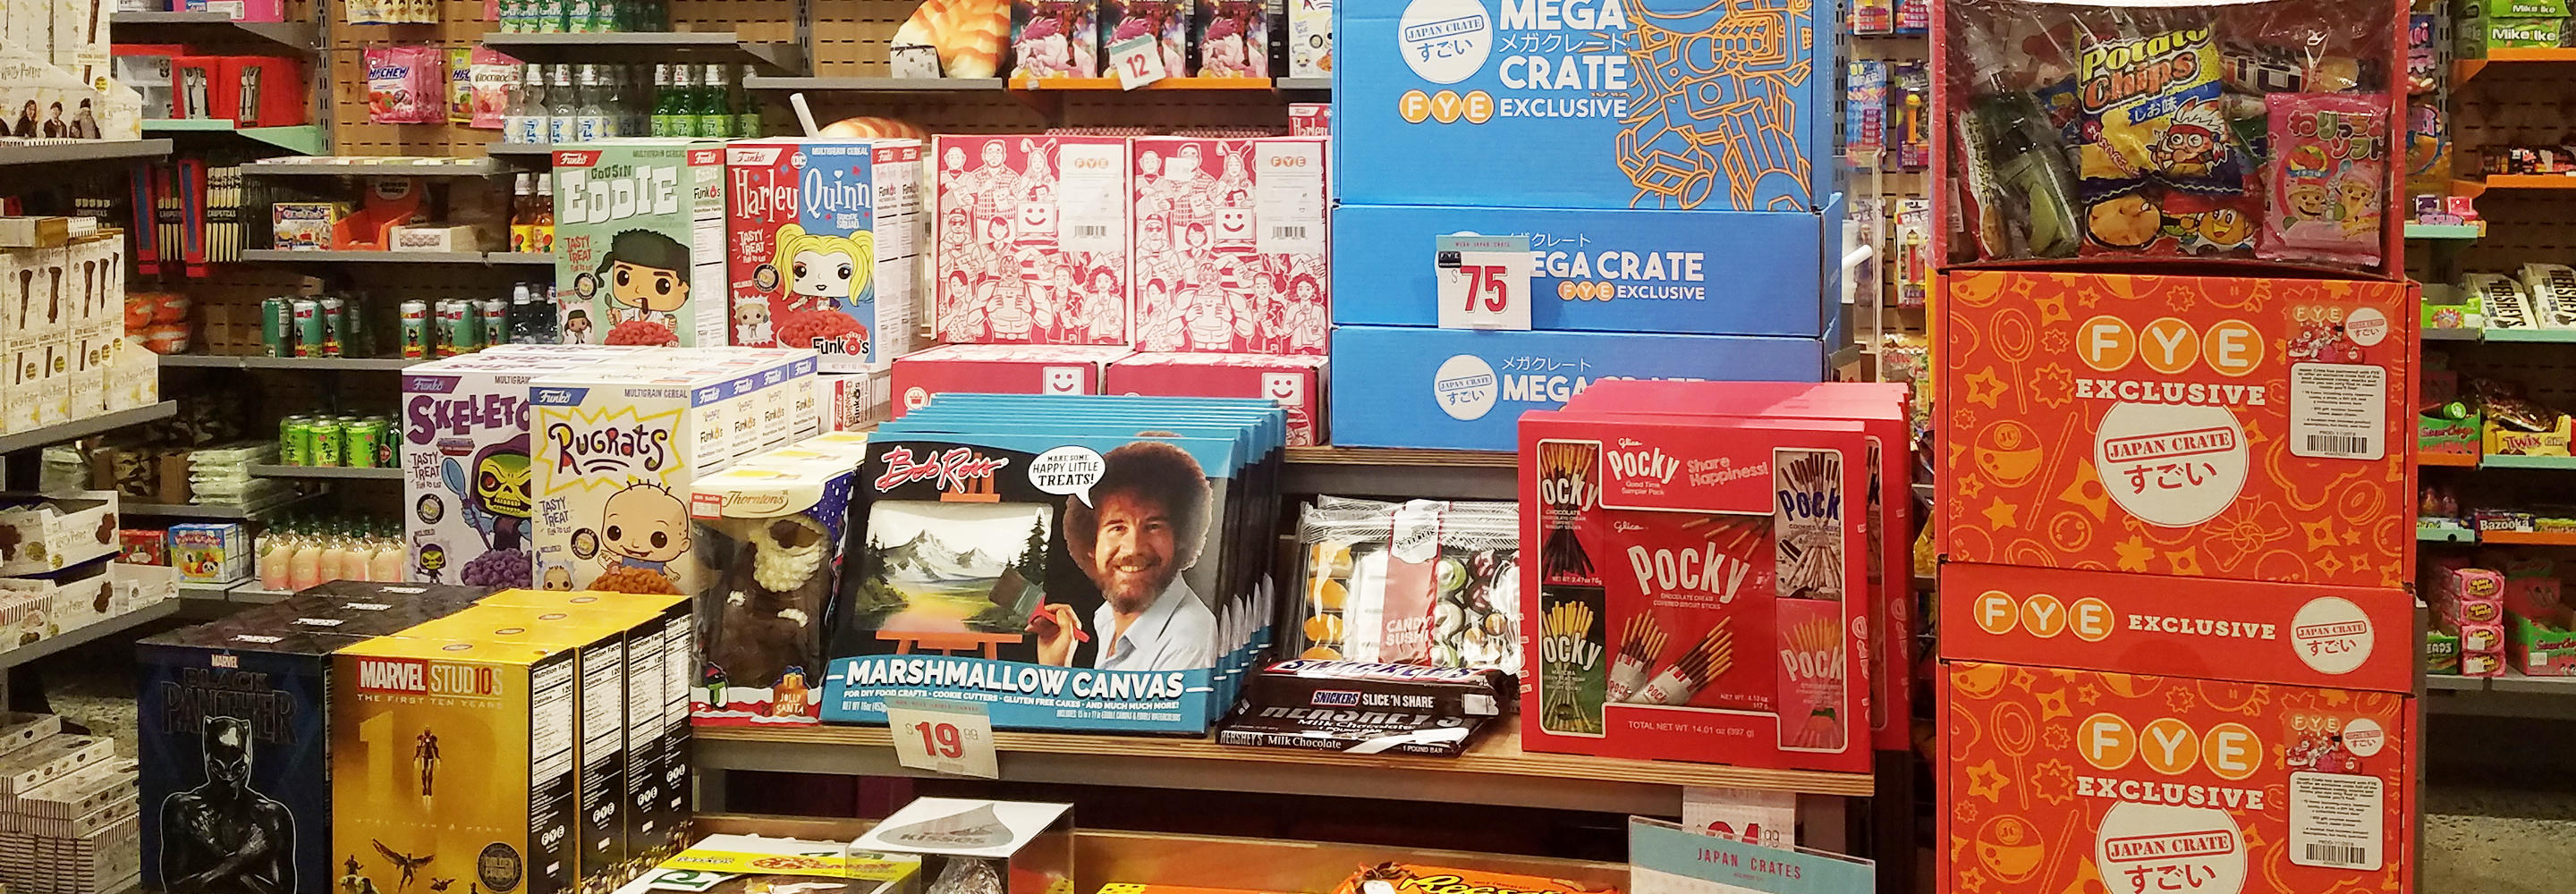 Navigate to image of Candy assortments featuring Japan Crates in FYE